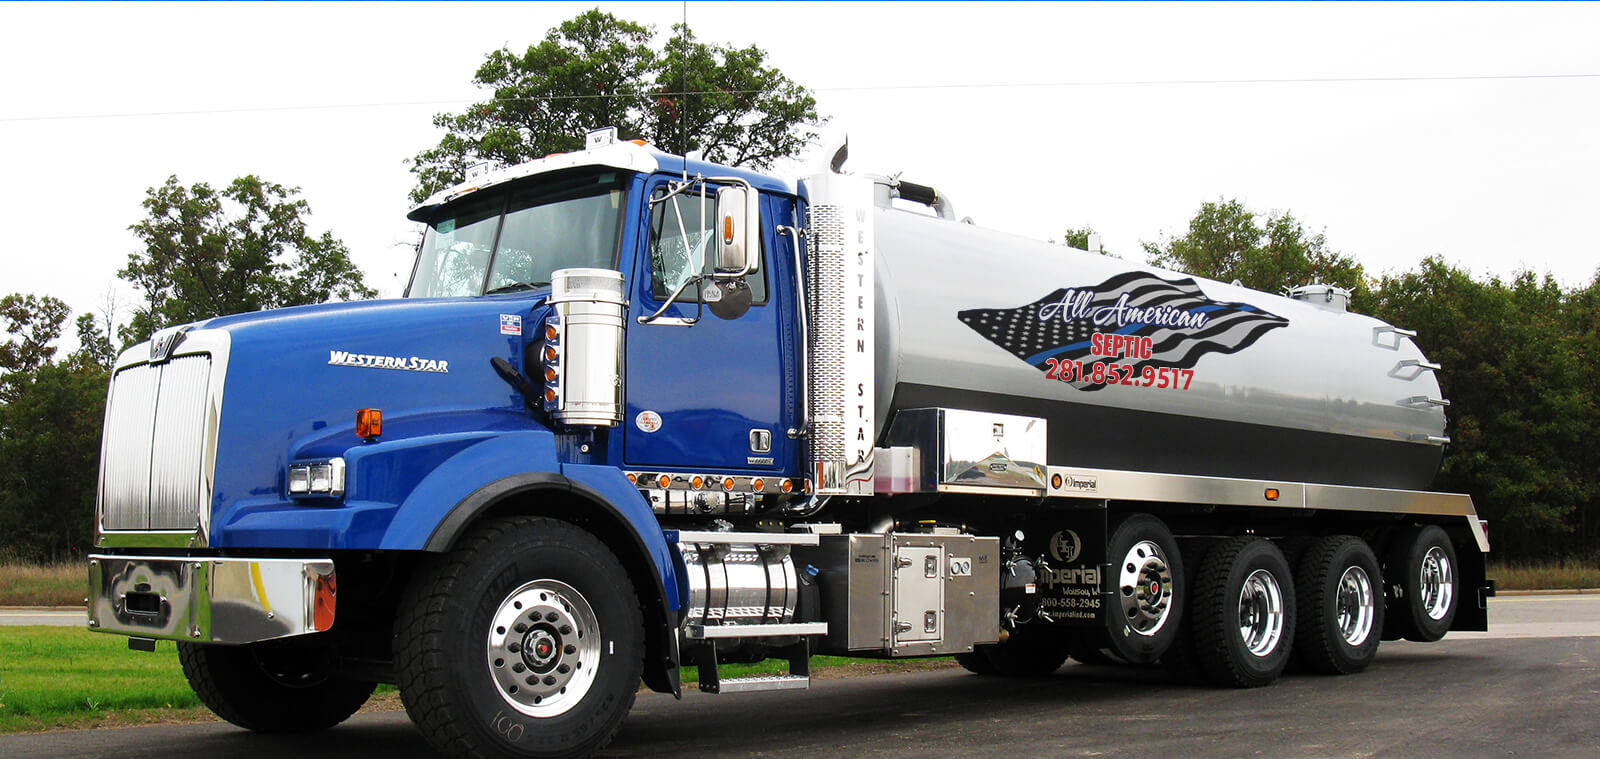 Largest Septic Specialist in the Houston area.